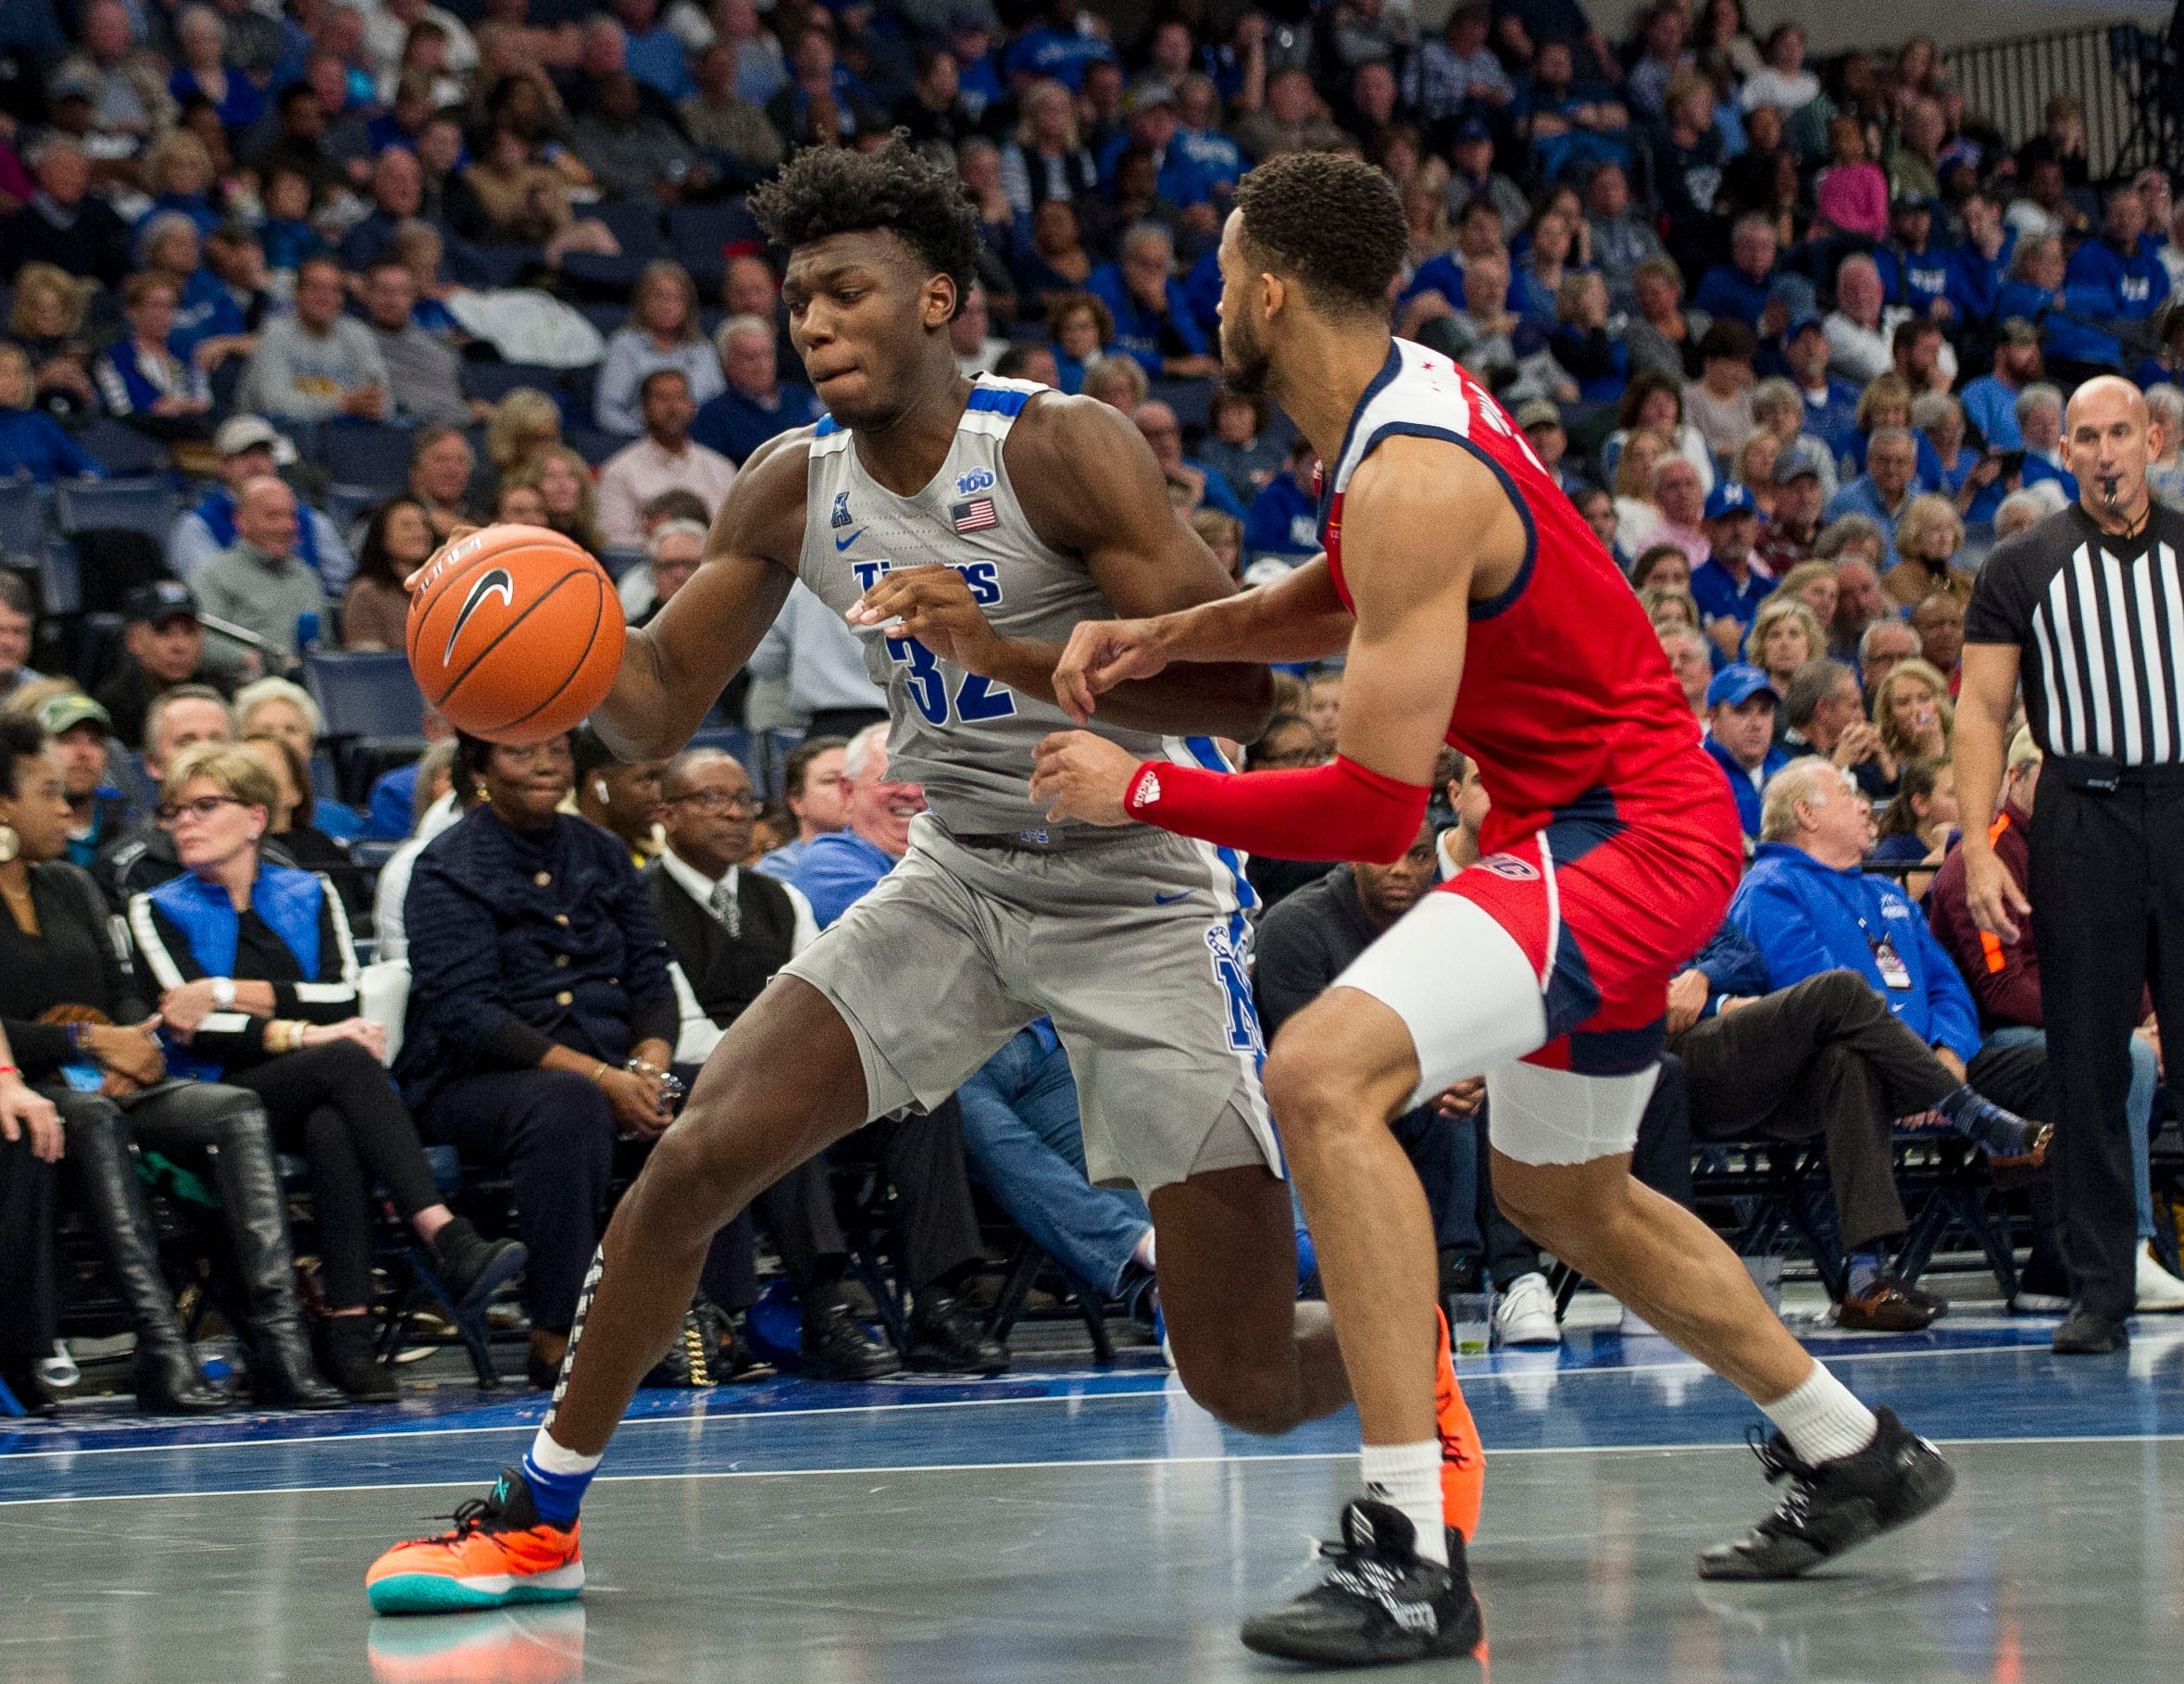 NBA draft: James Wiseman calls Warriors 'great situation' at No. 2, has not worked out for T'wolves at No. 1